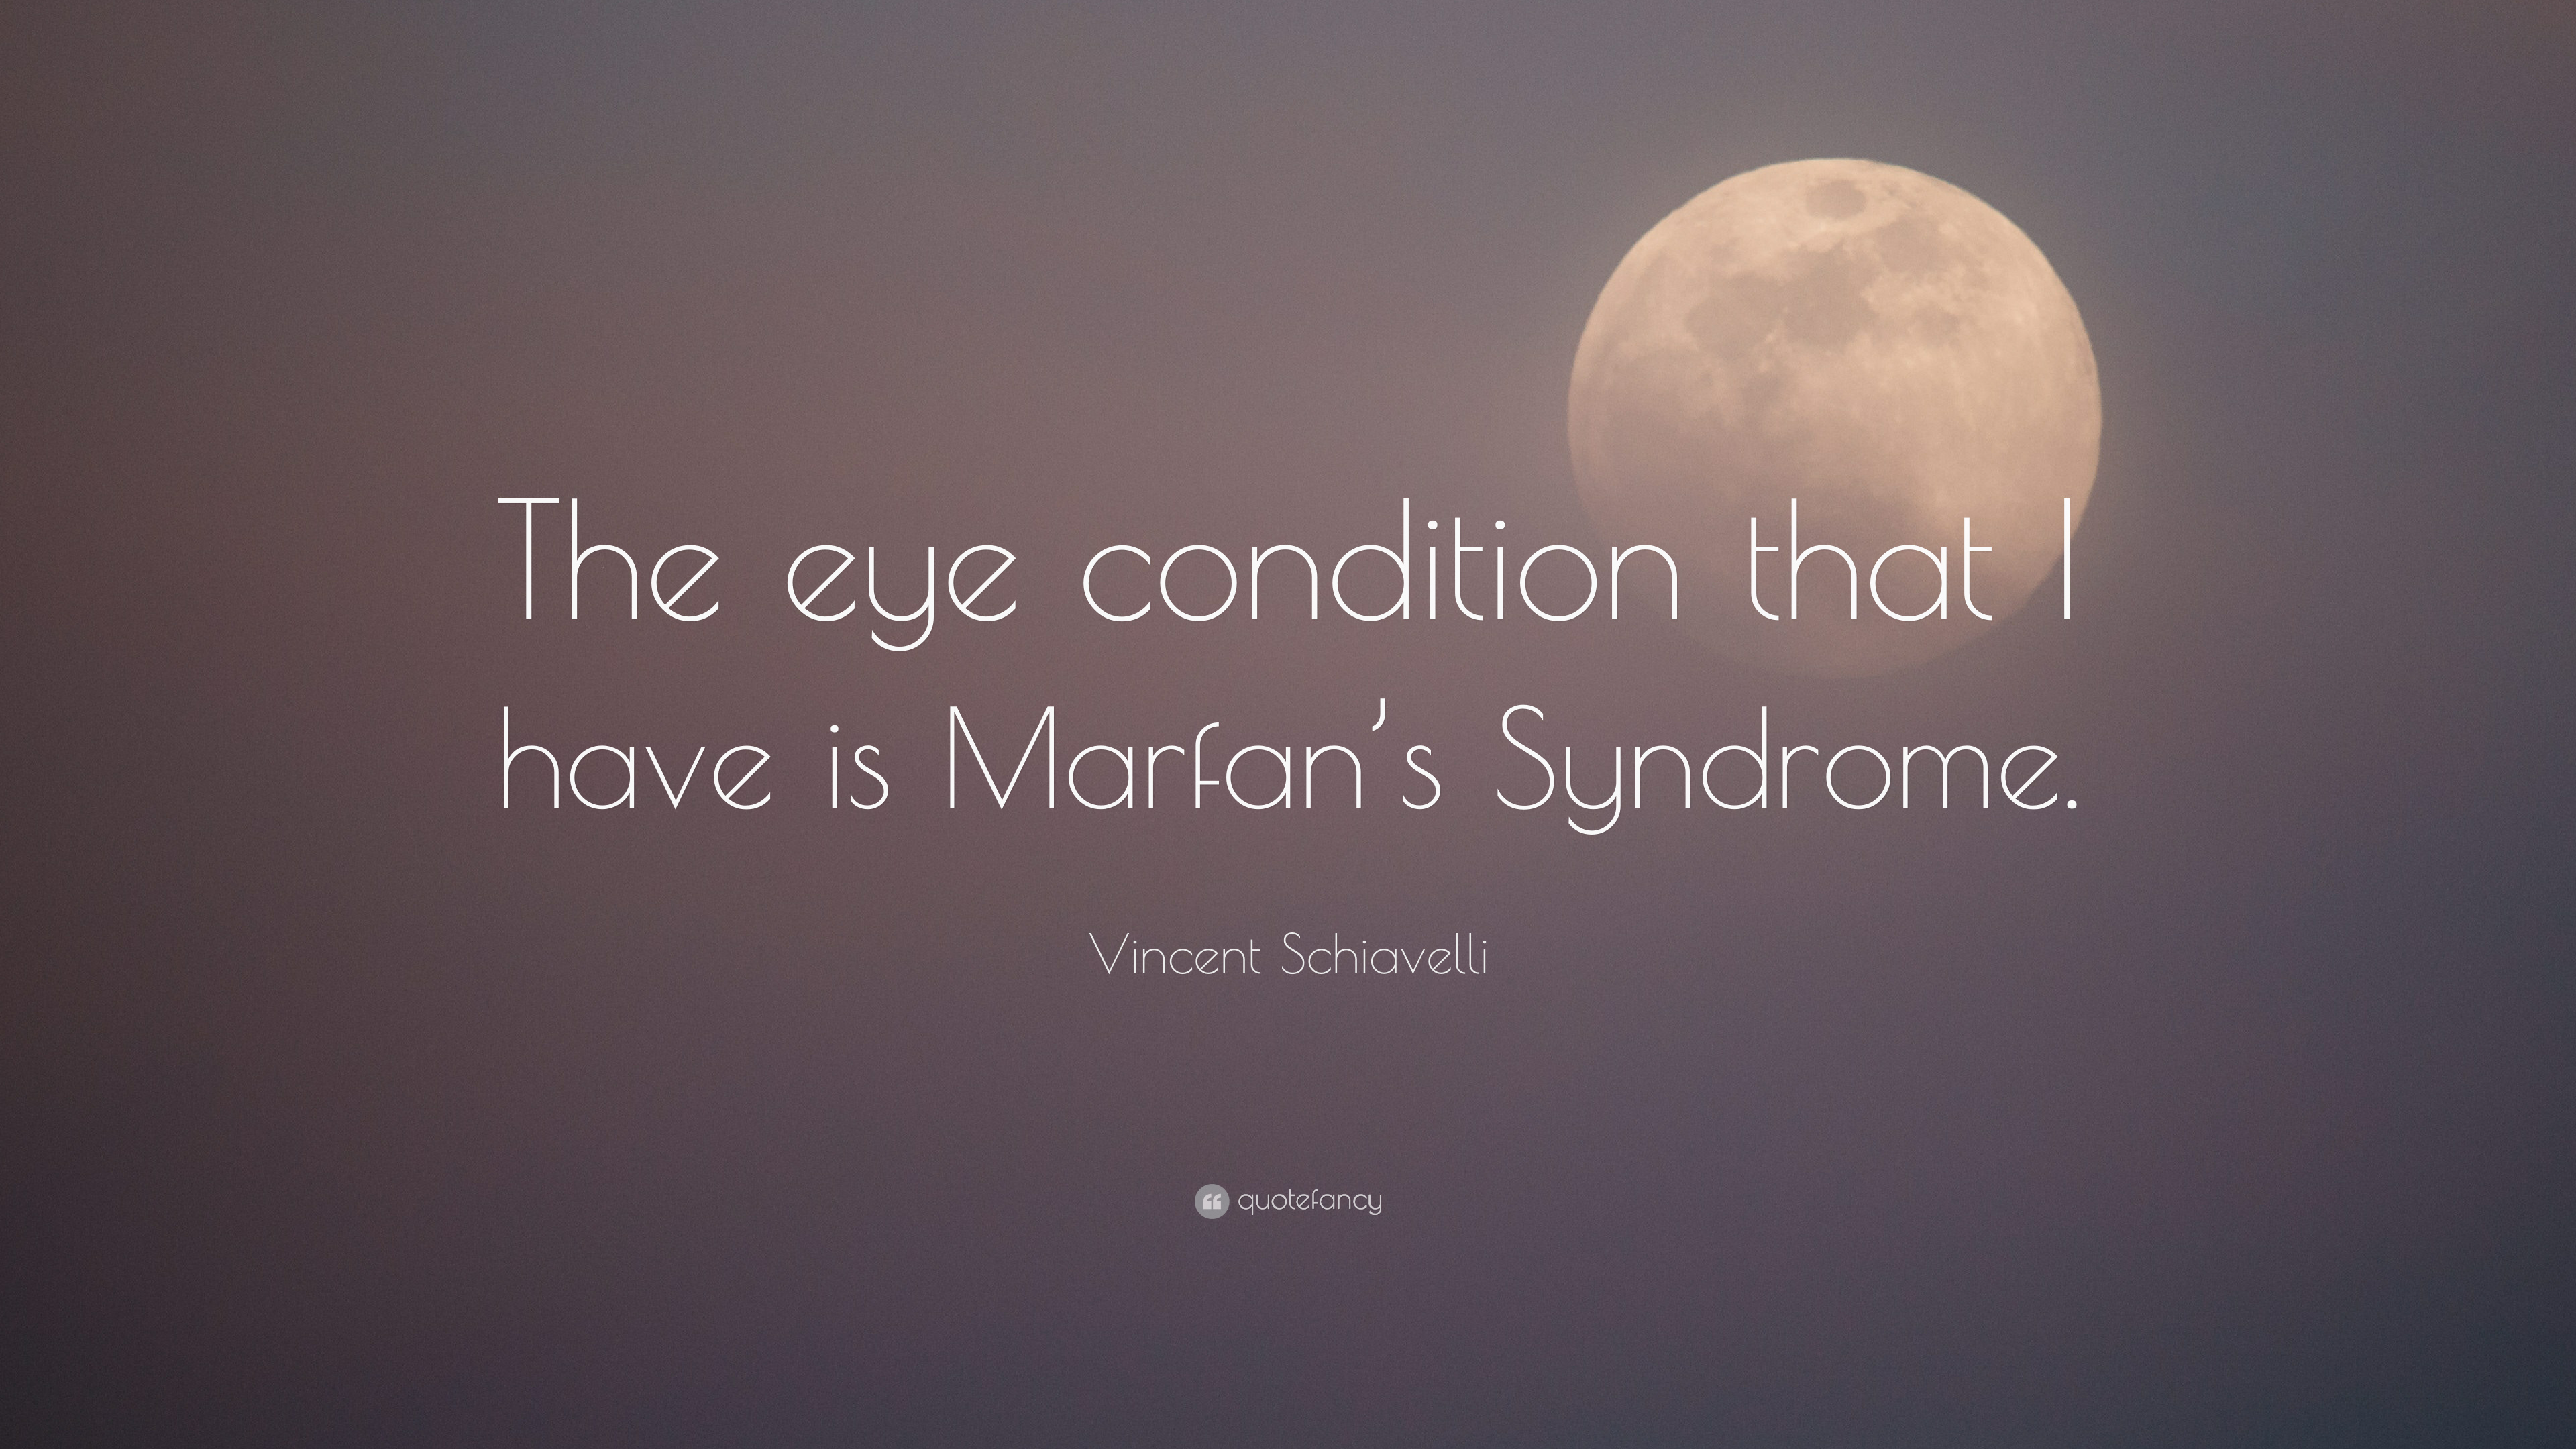 Vincent Schiavelli Marfan Syndrome Vincent Schiavelli Quo...